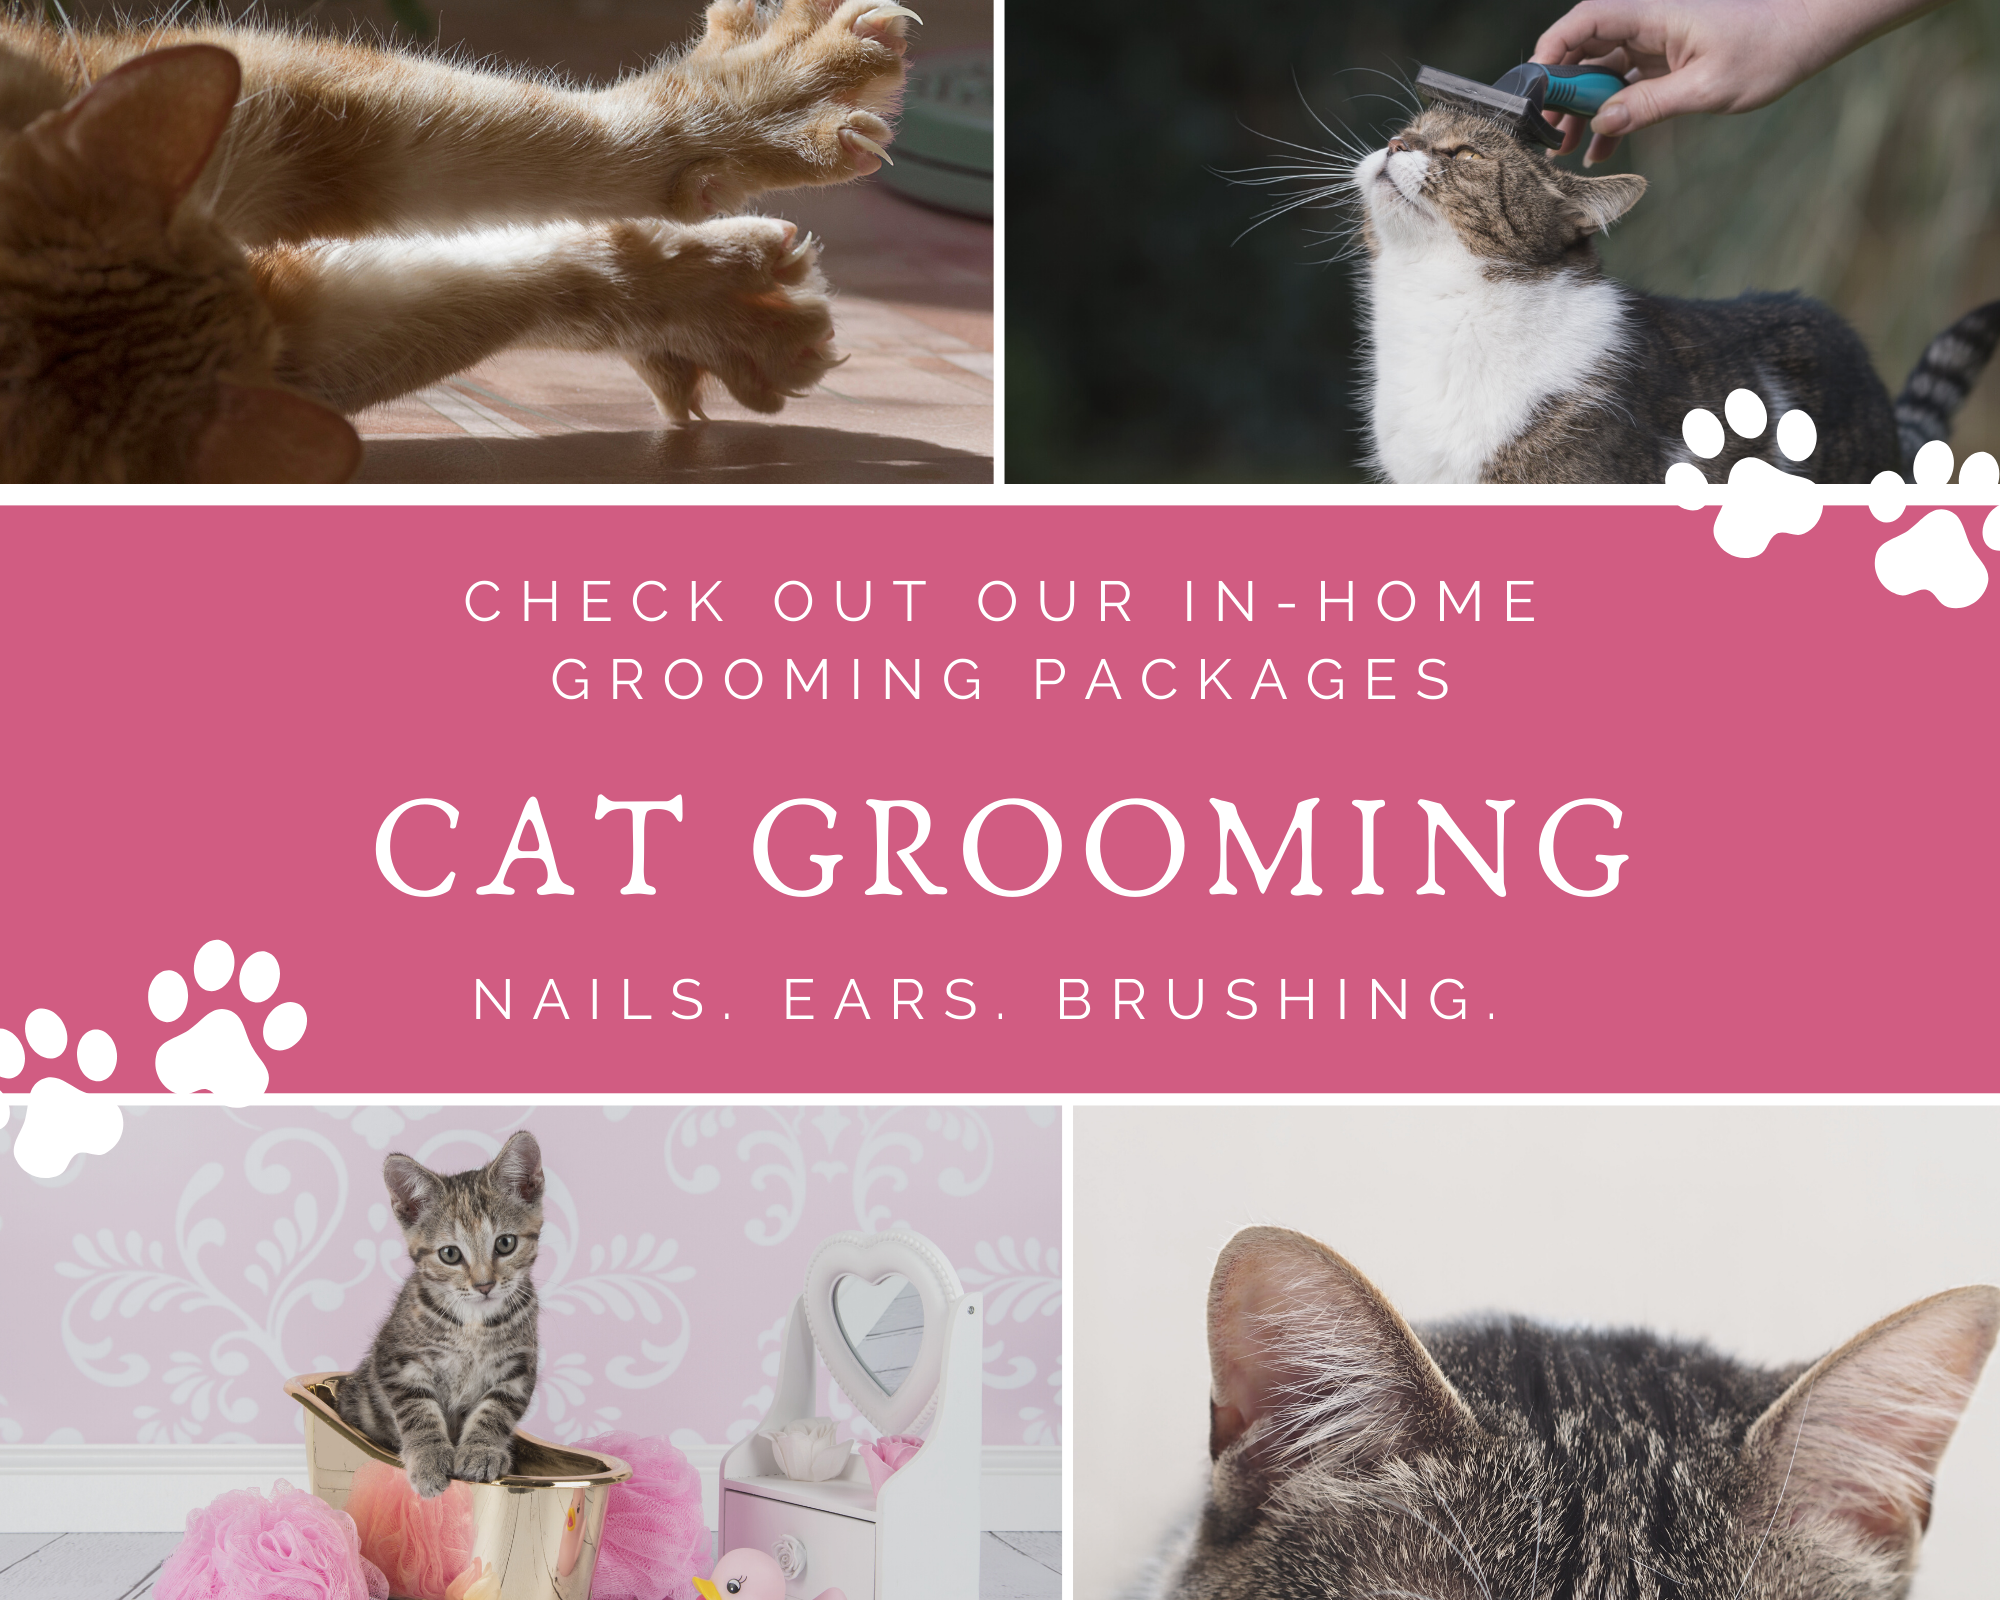 cat grooming services